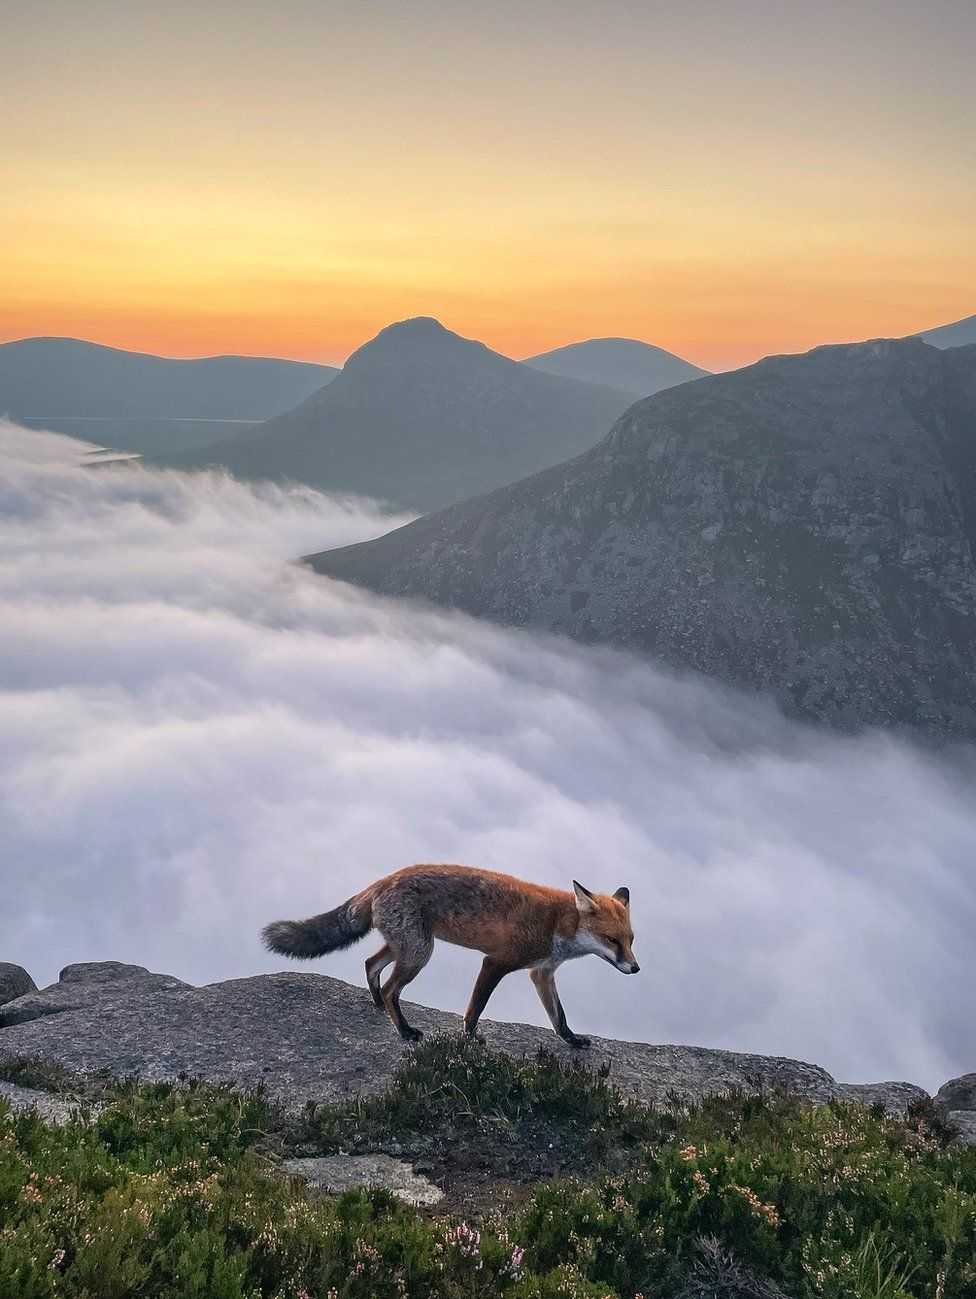 A fox walks along a granite stone at sunset on Slieve Binnian in the Mourne mountains in County Down